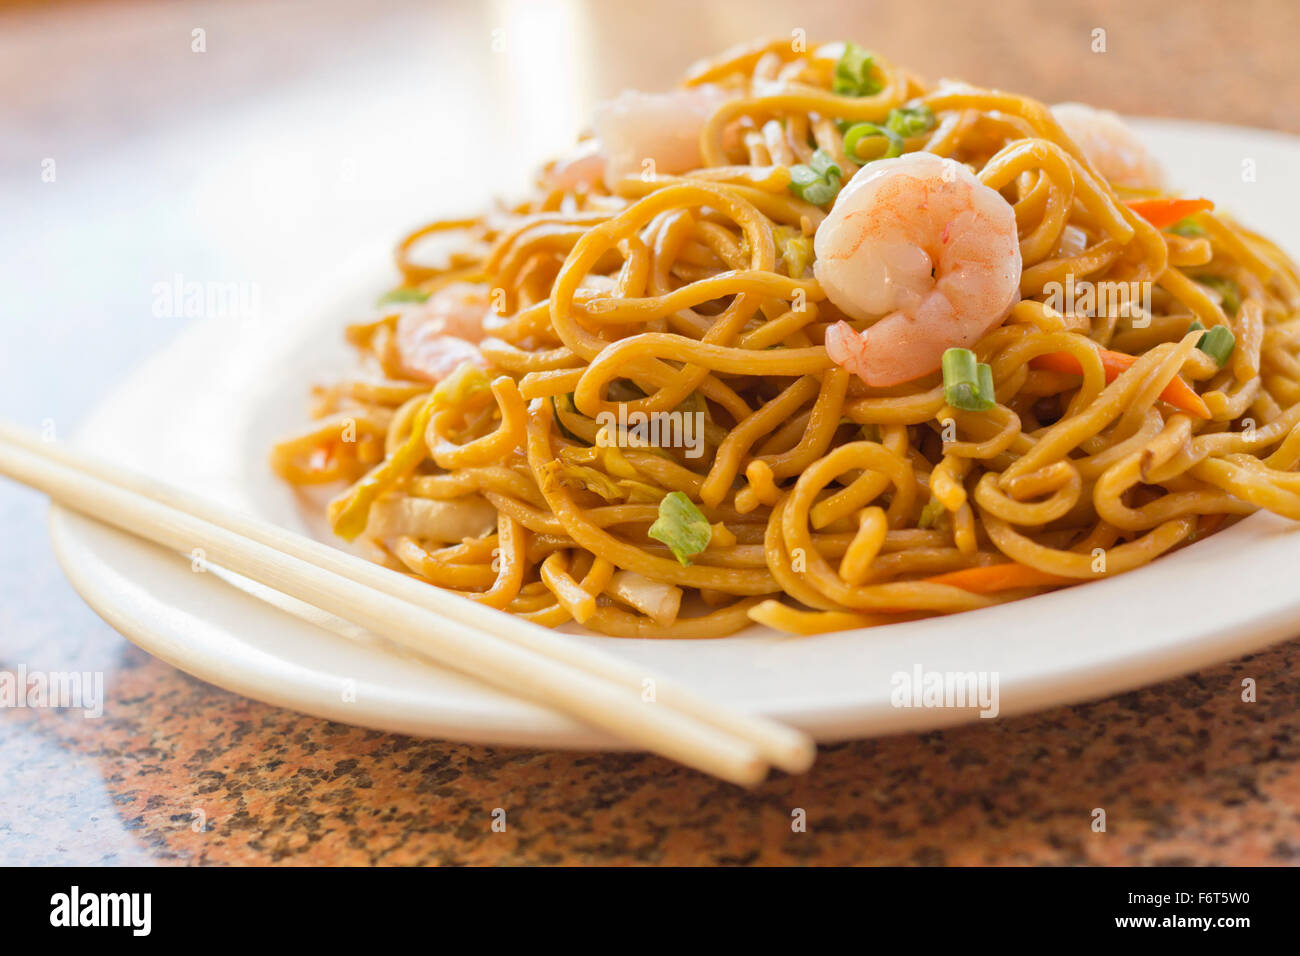 Delicious chinese food shrimp lo mein stir fry stock photo royalty free image 90271244 alamy - Delicious chinese cuisine ...